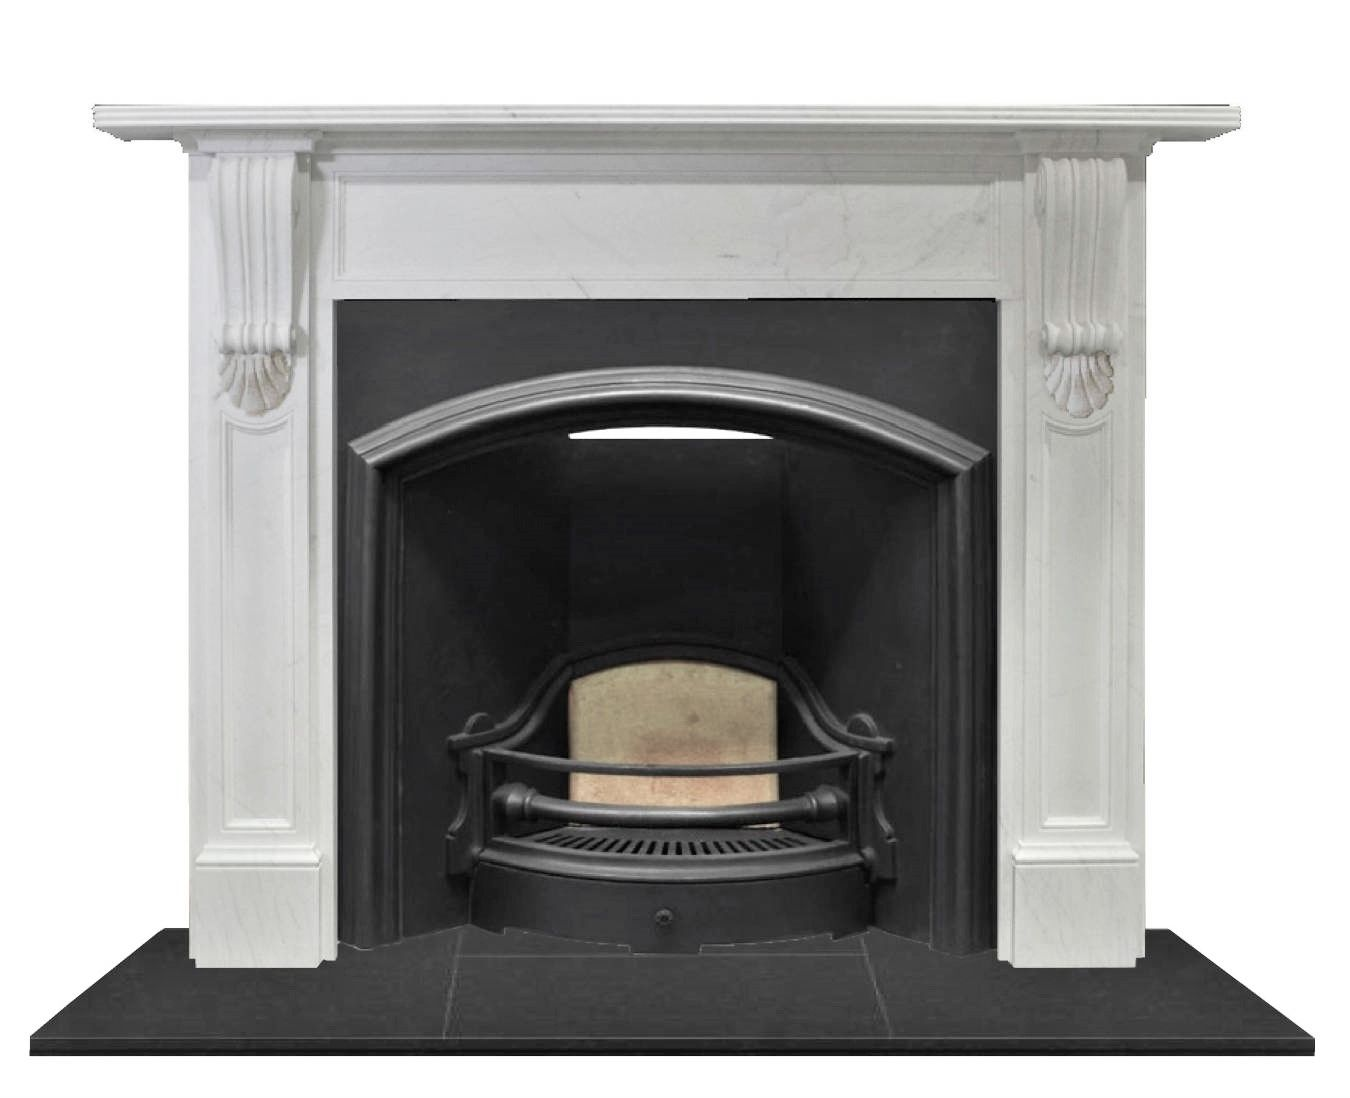 The Melrose Wide Cast Iron Fireplace Insert Cast Iron Fireplace Insert Cast Iron Fireplace Fireplace Inserts